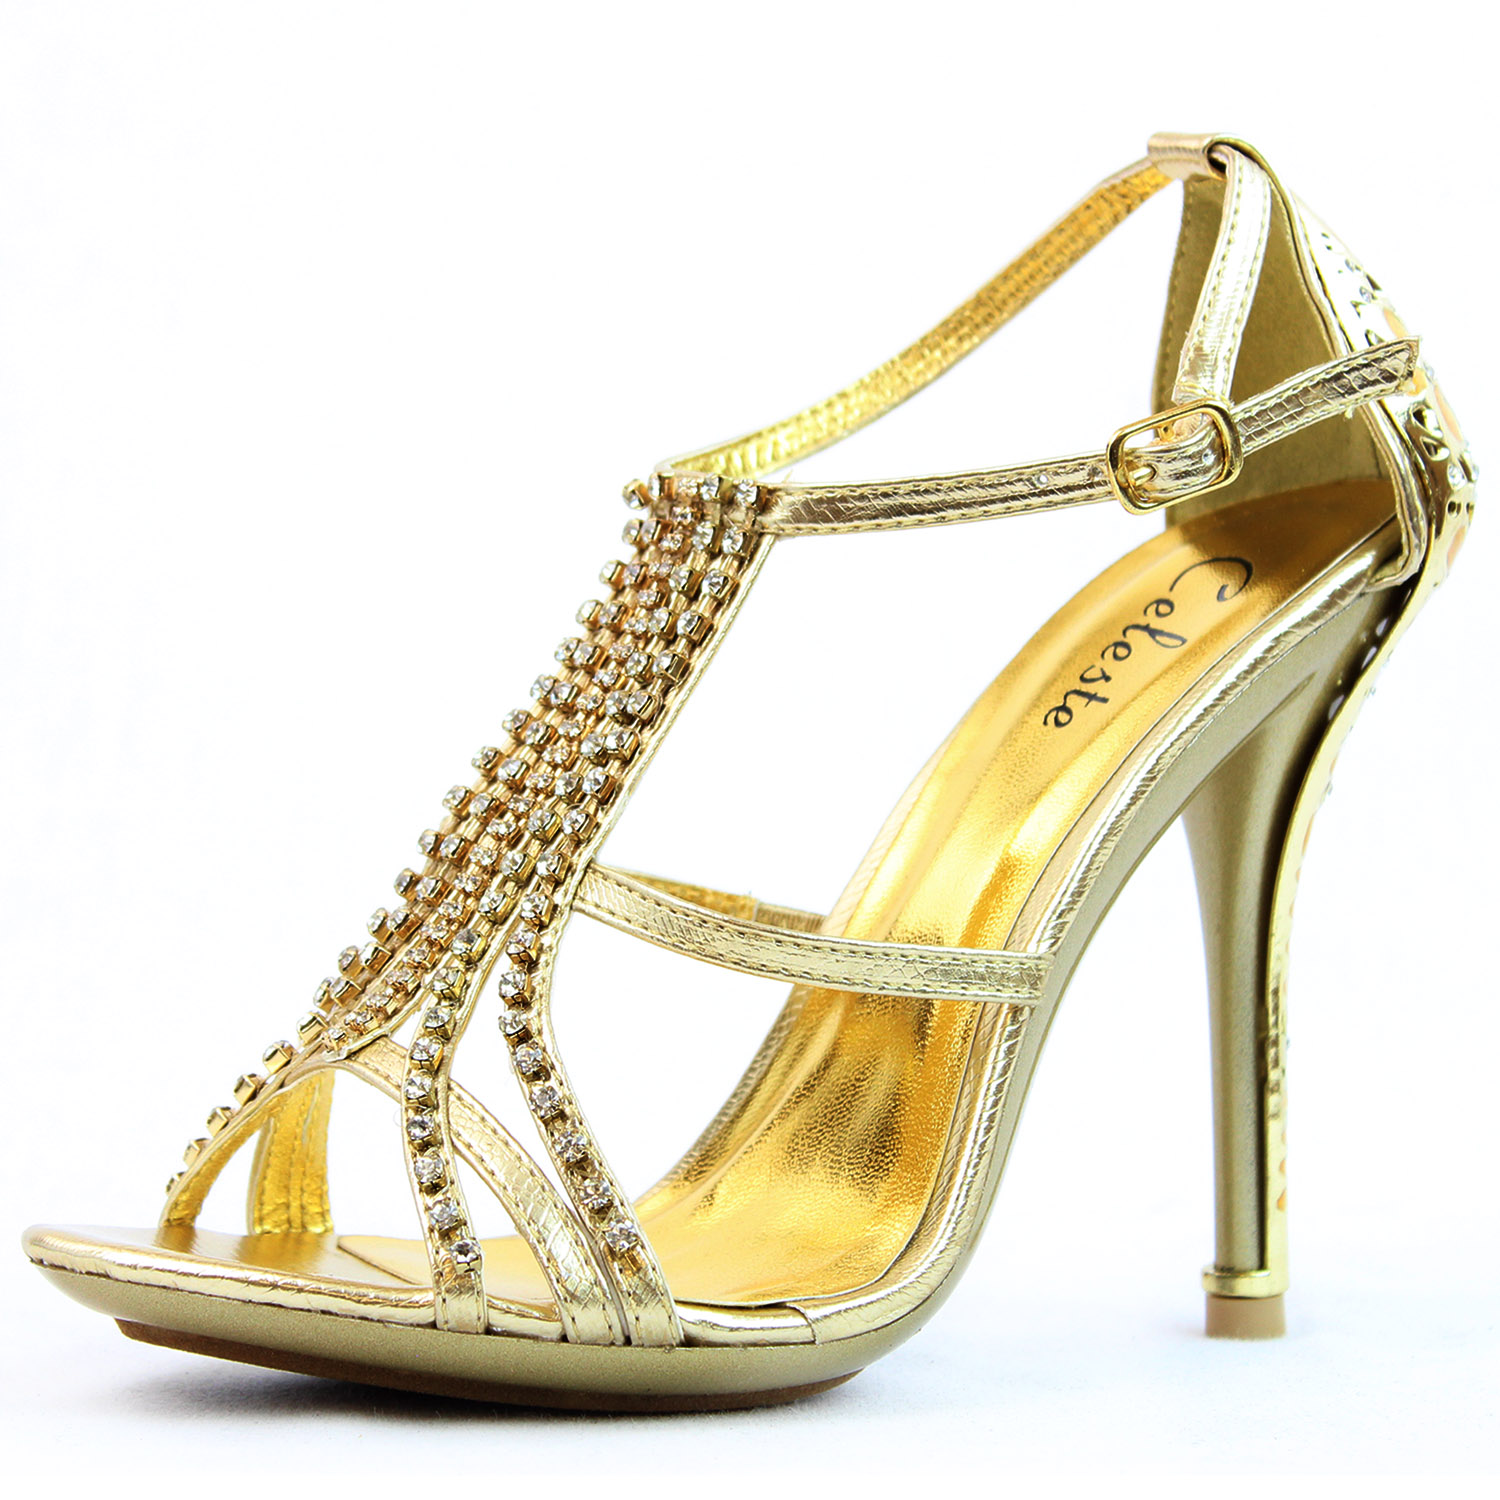 33 - Gold Strappy High Heels